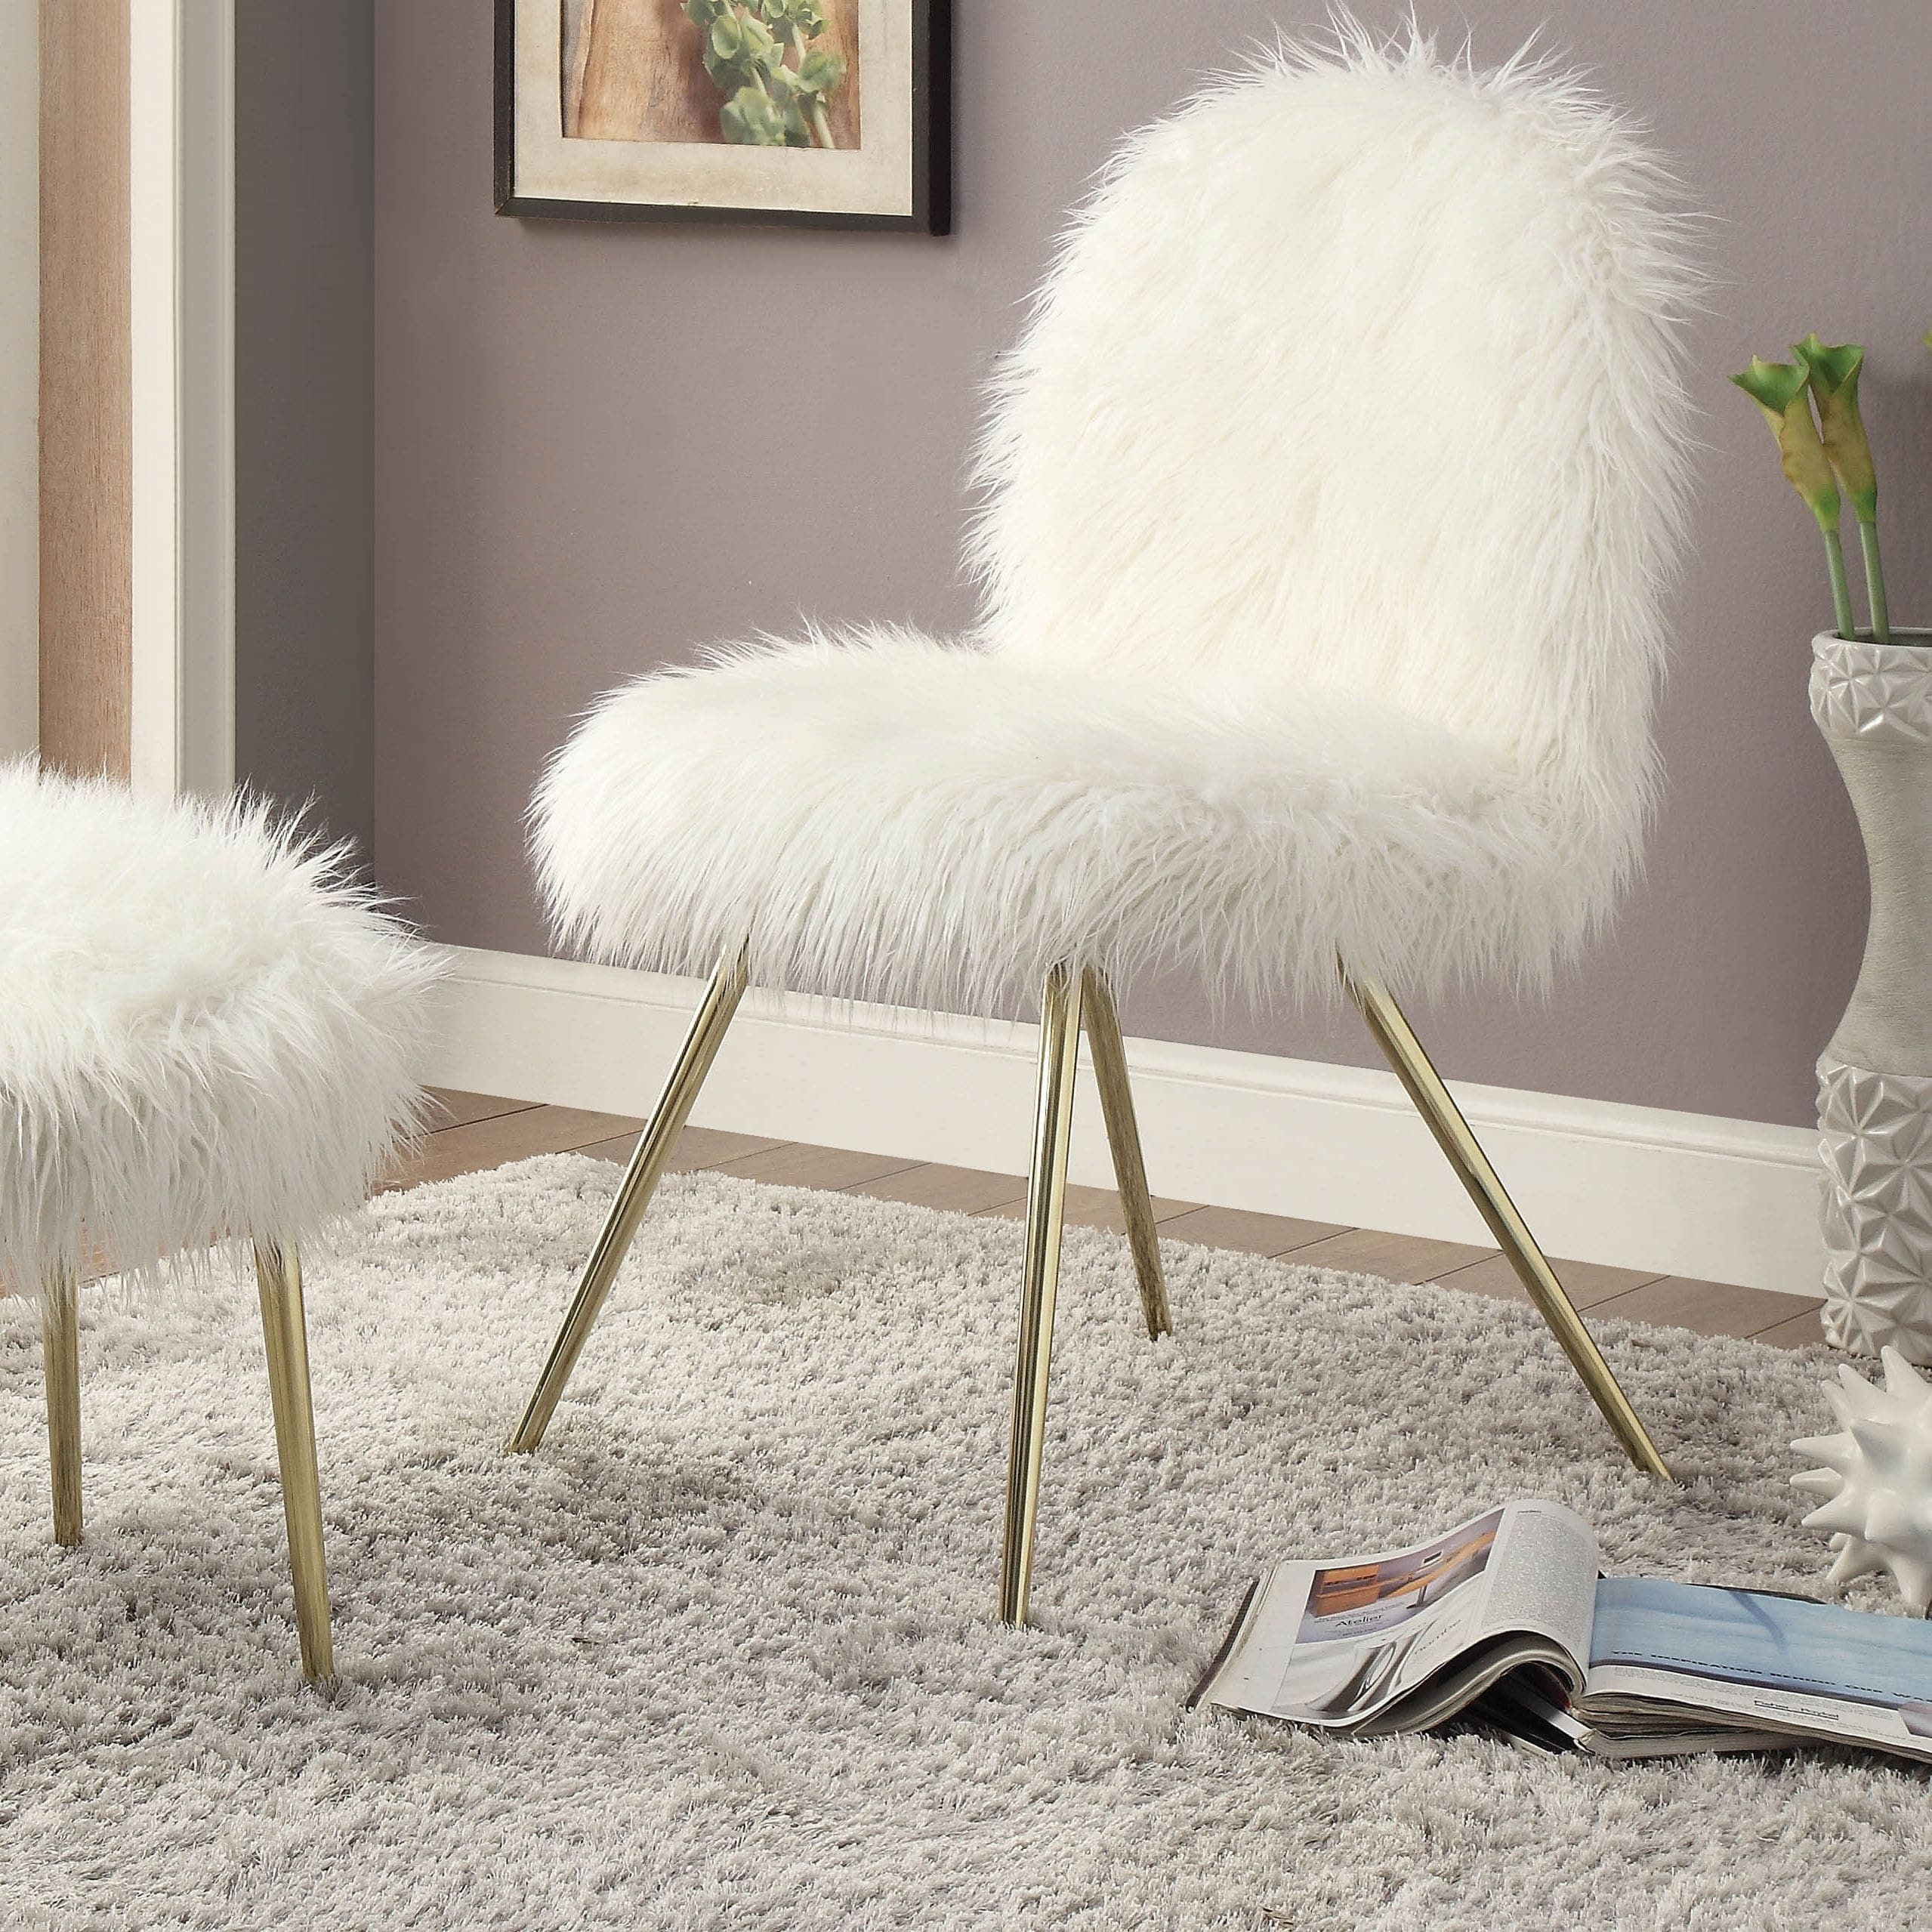 Image of: Shop Black Friday Deals On Furniture Of America Kene Modern White Faux Fur Padded Accent Chair On Sale Overstock 21125807